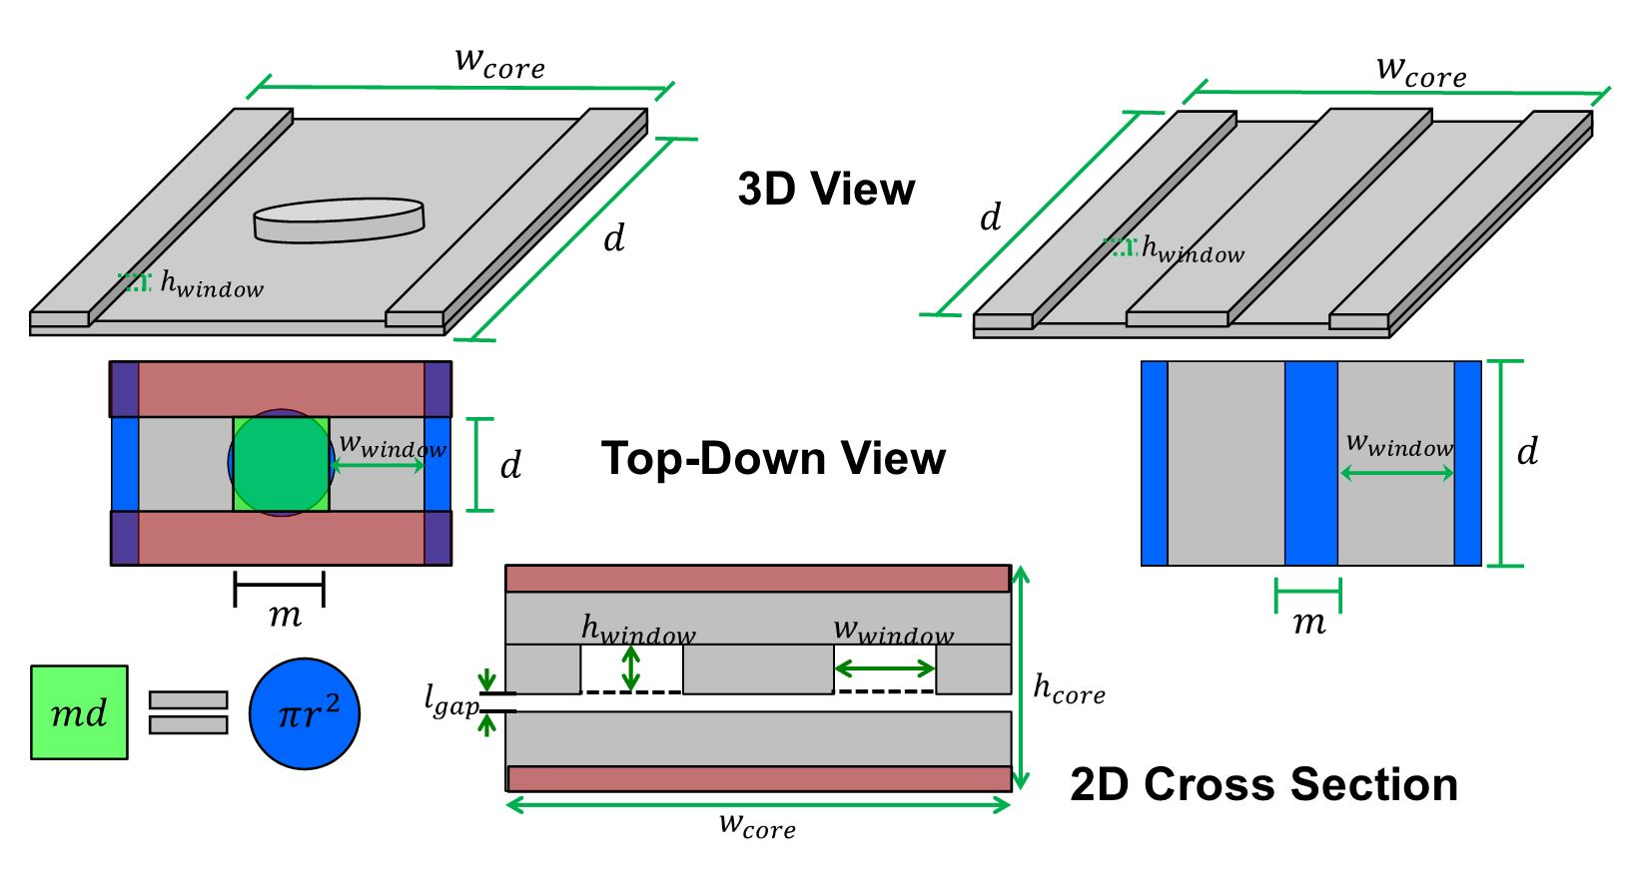 2-D modeling of ER and EI cores